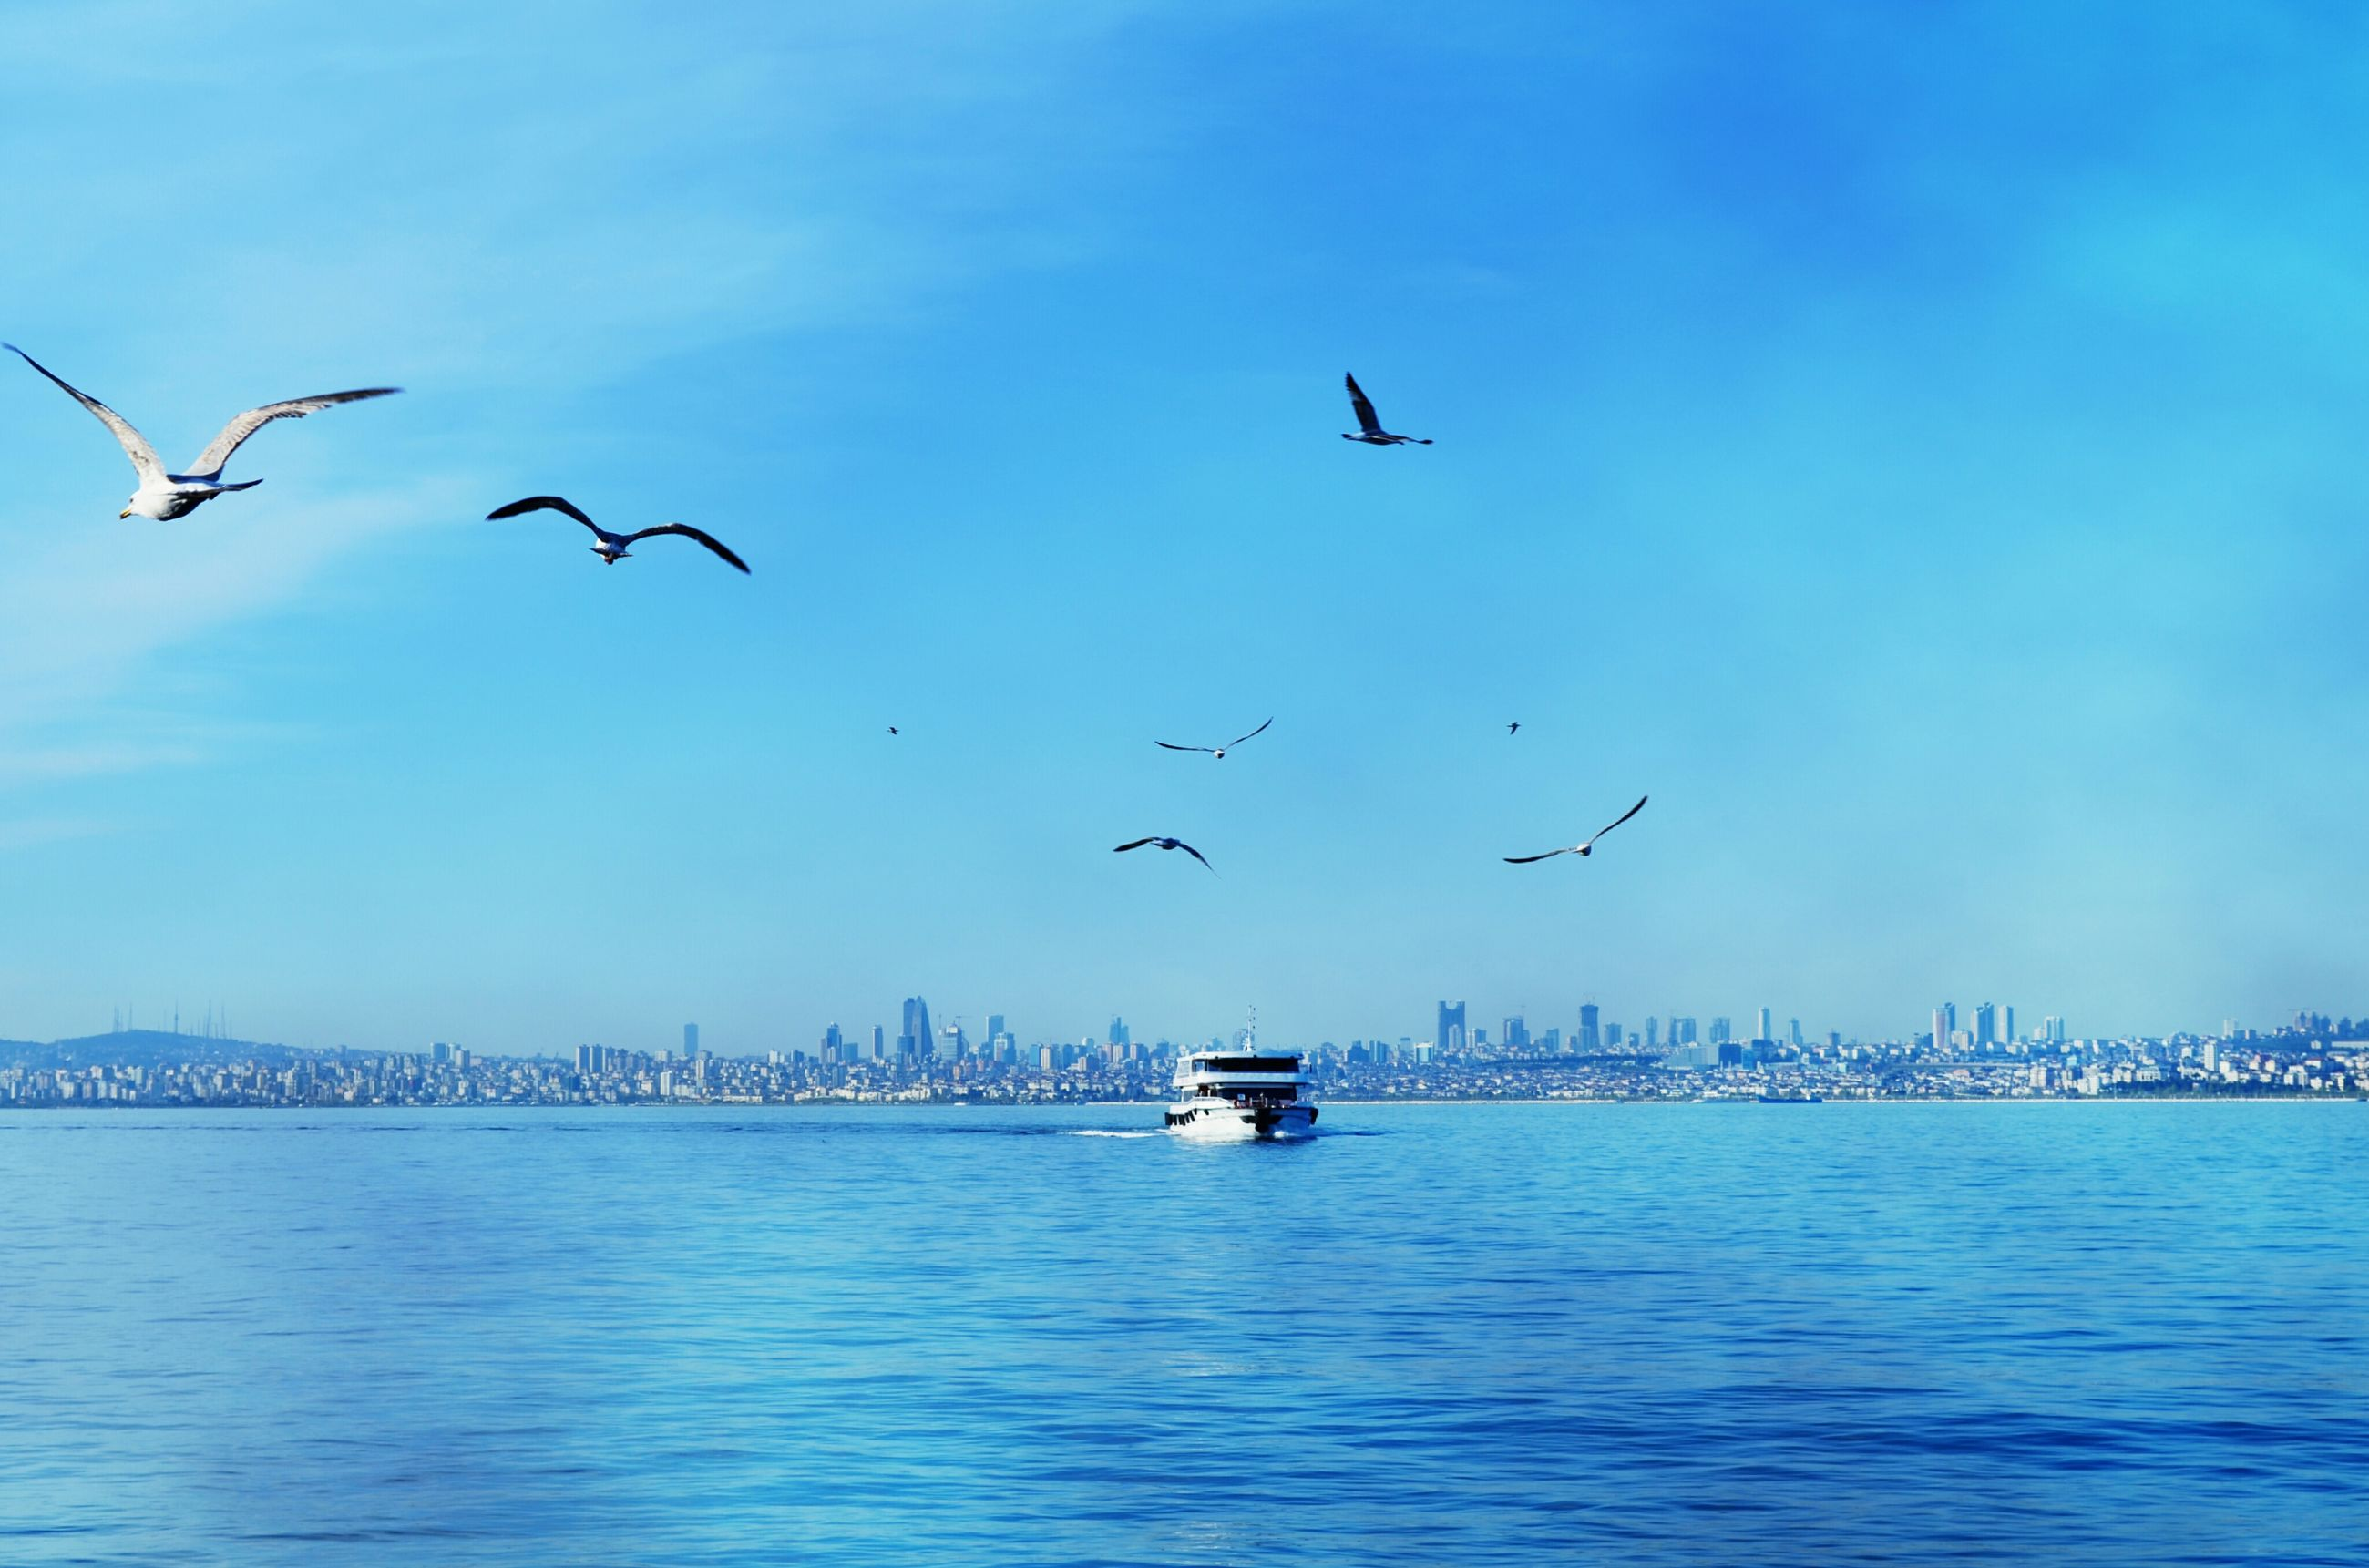 bird, flying, animal themes, animals in the wild, water, wildlife, sea, waterfront, transportation, mid-air, blue, spread wings, sky, seagull, clear sky, building exterior, mode of transport, built structure, architecture